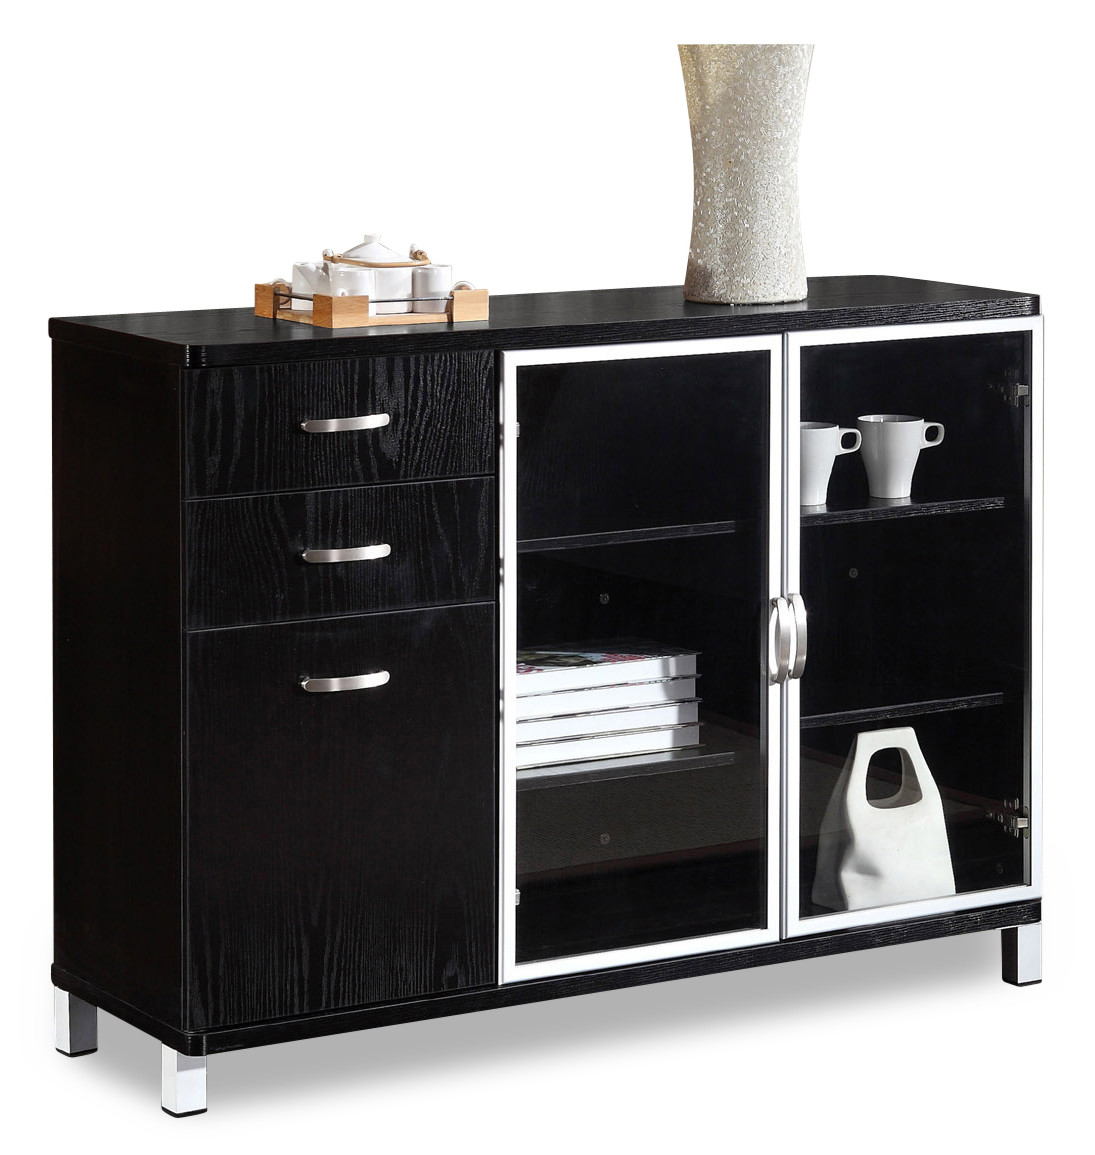 Andison Display Cabinet Black Display Cabinets Shelves Display Storage Cabinets Living